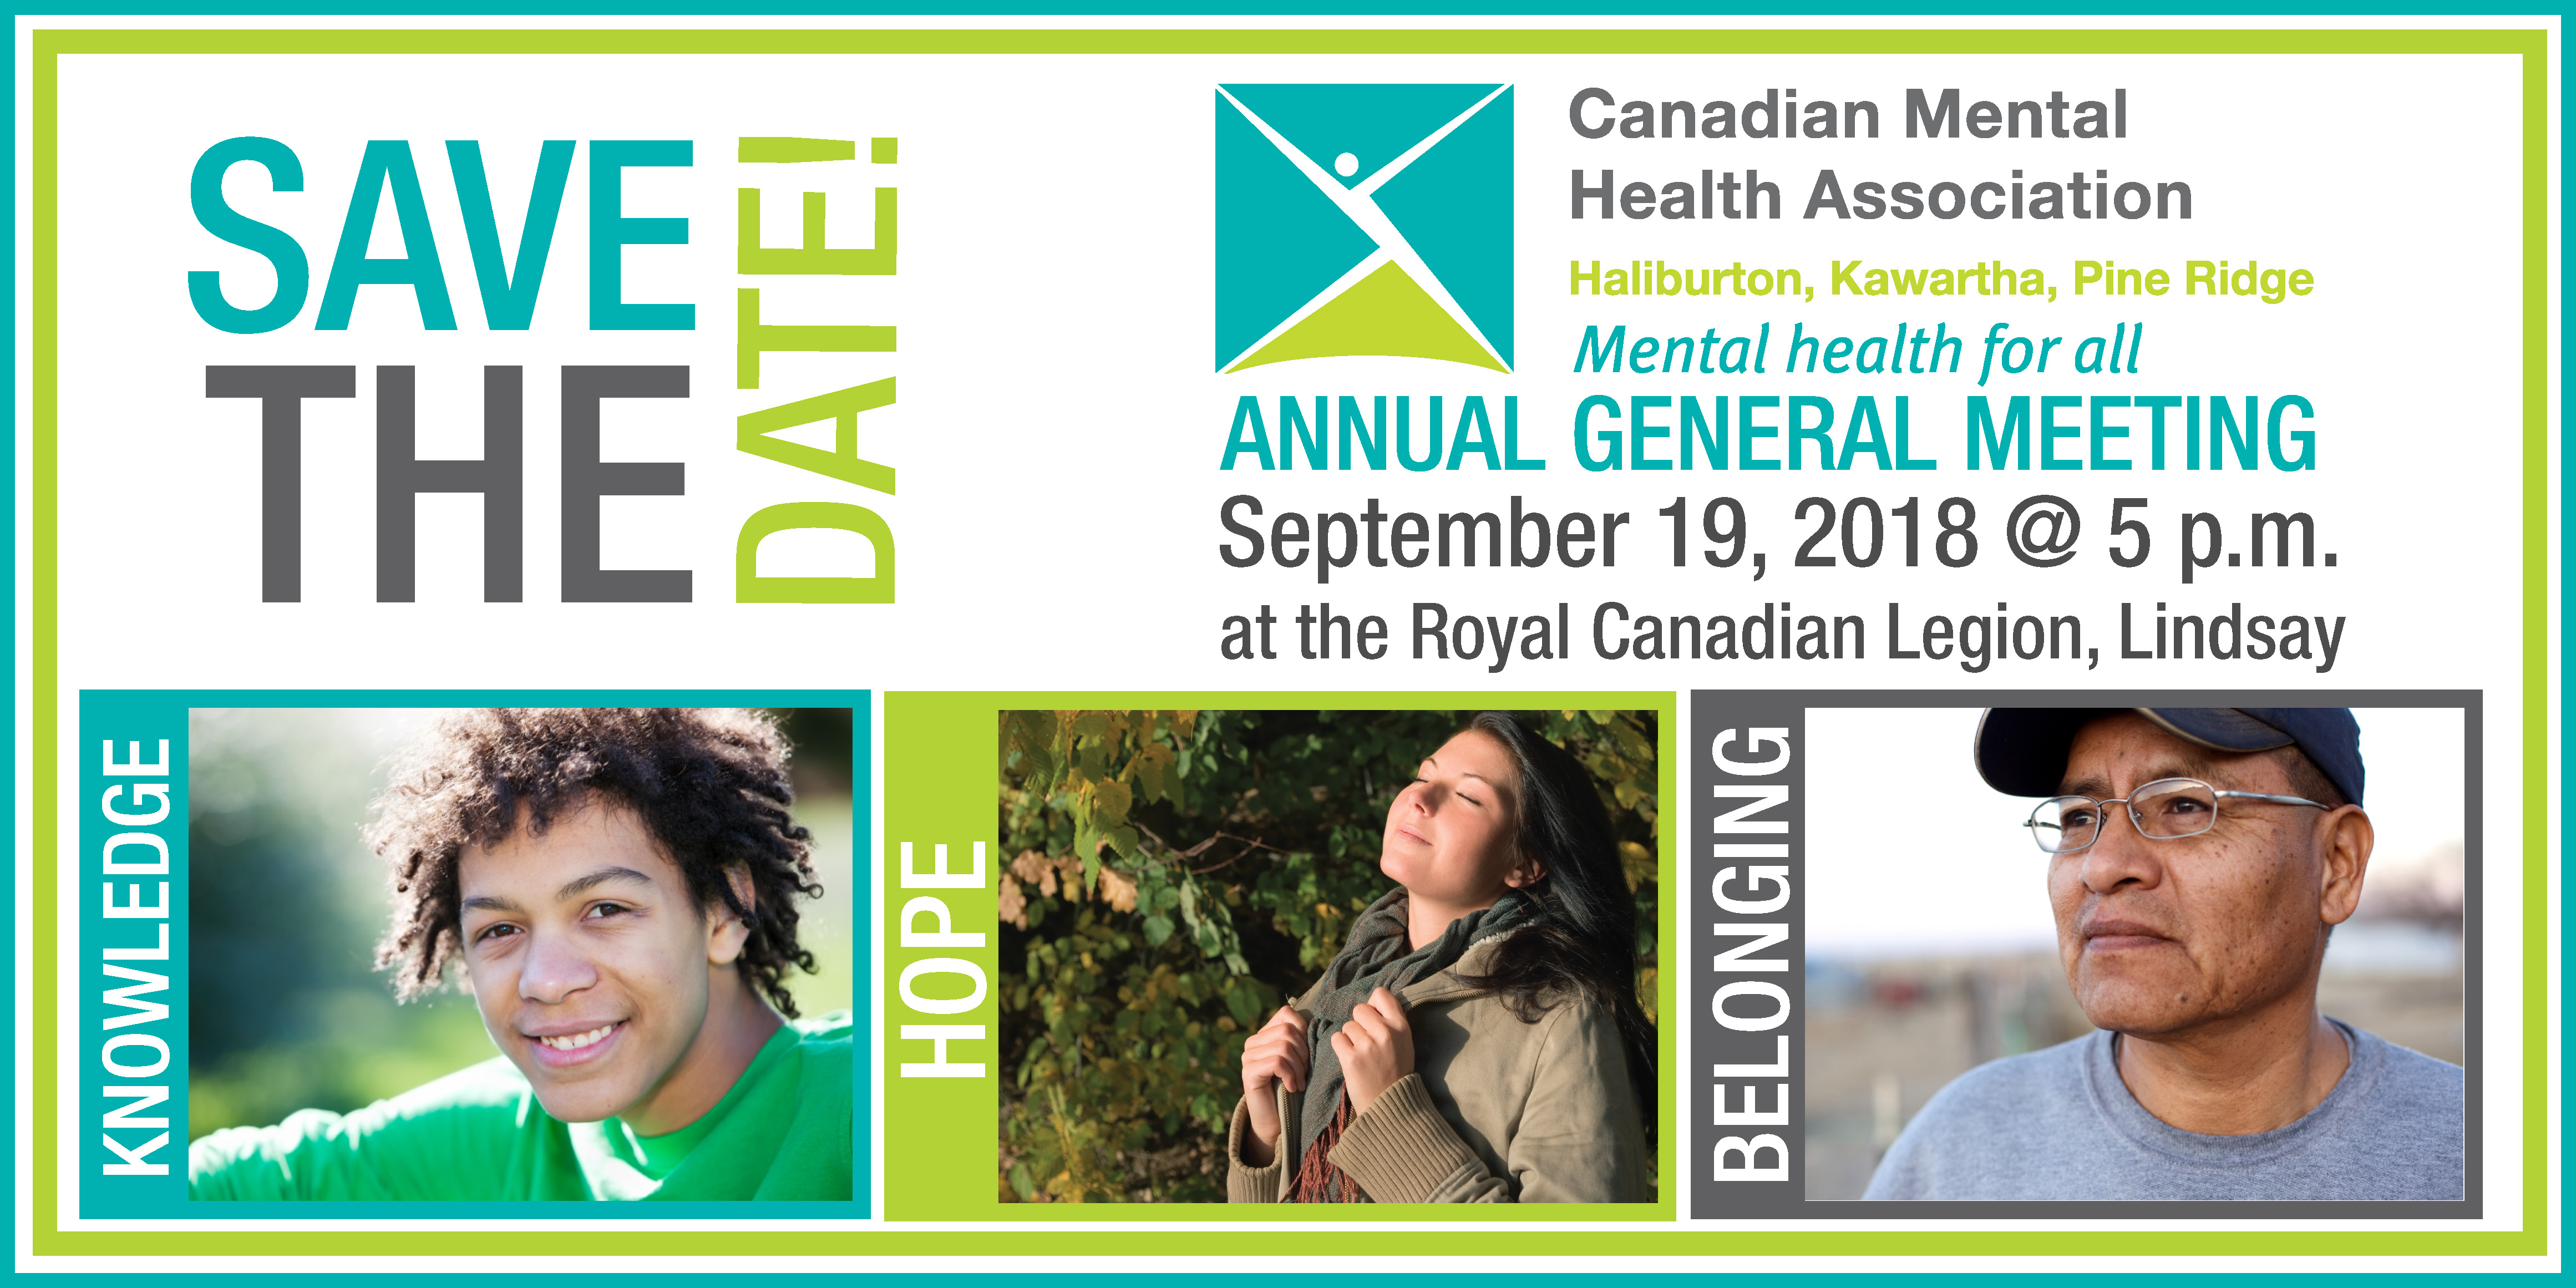 Save the Date for our Annual General Meeting